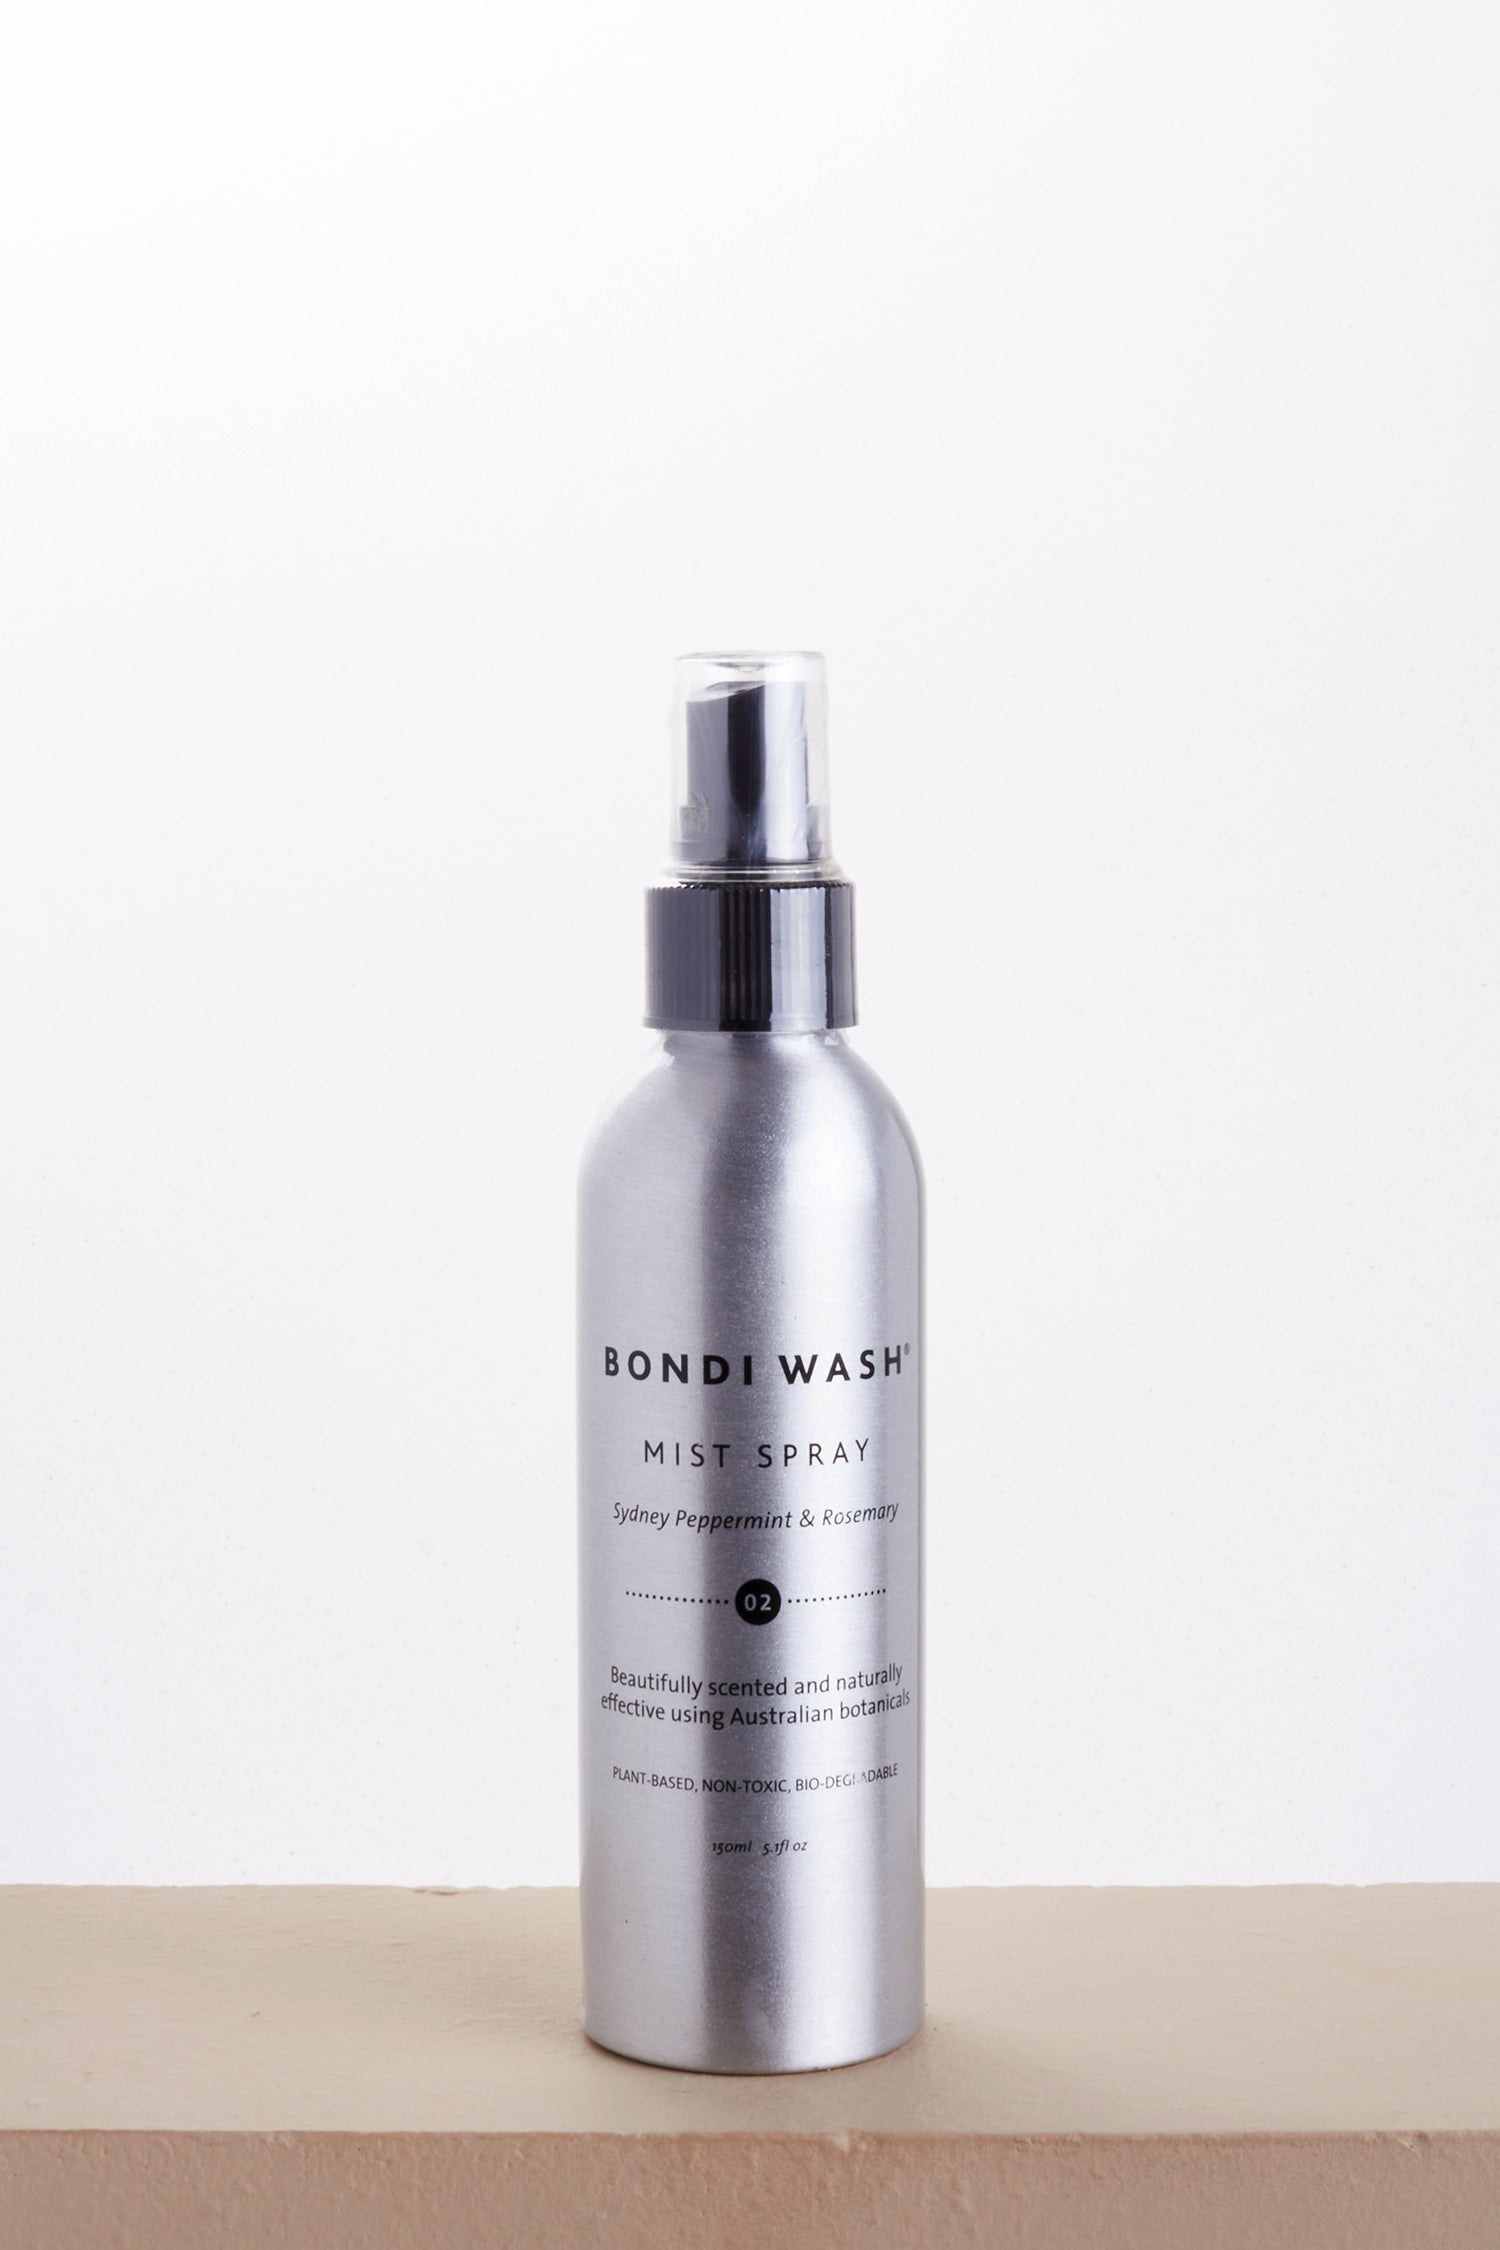 MIST SPRAY FOR ROOMS & LINENS SYDNEY PEPPERMINT & ROSEMARY 150ml